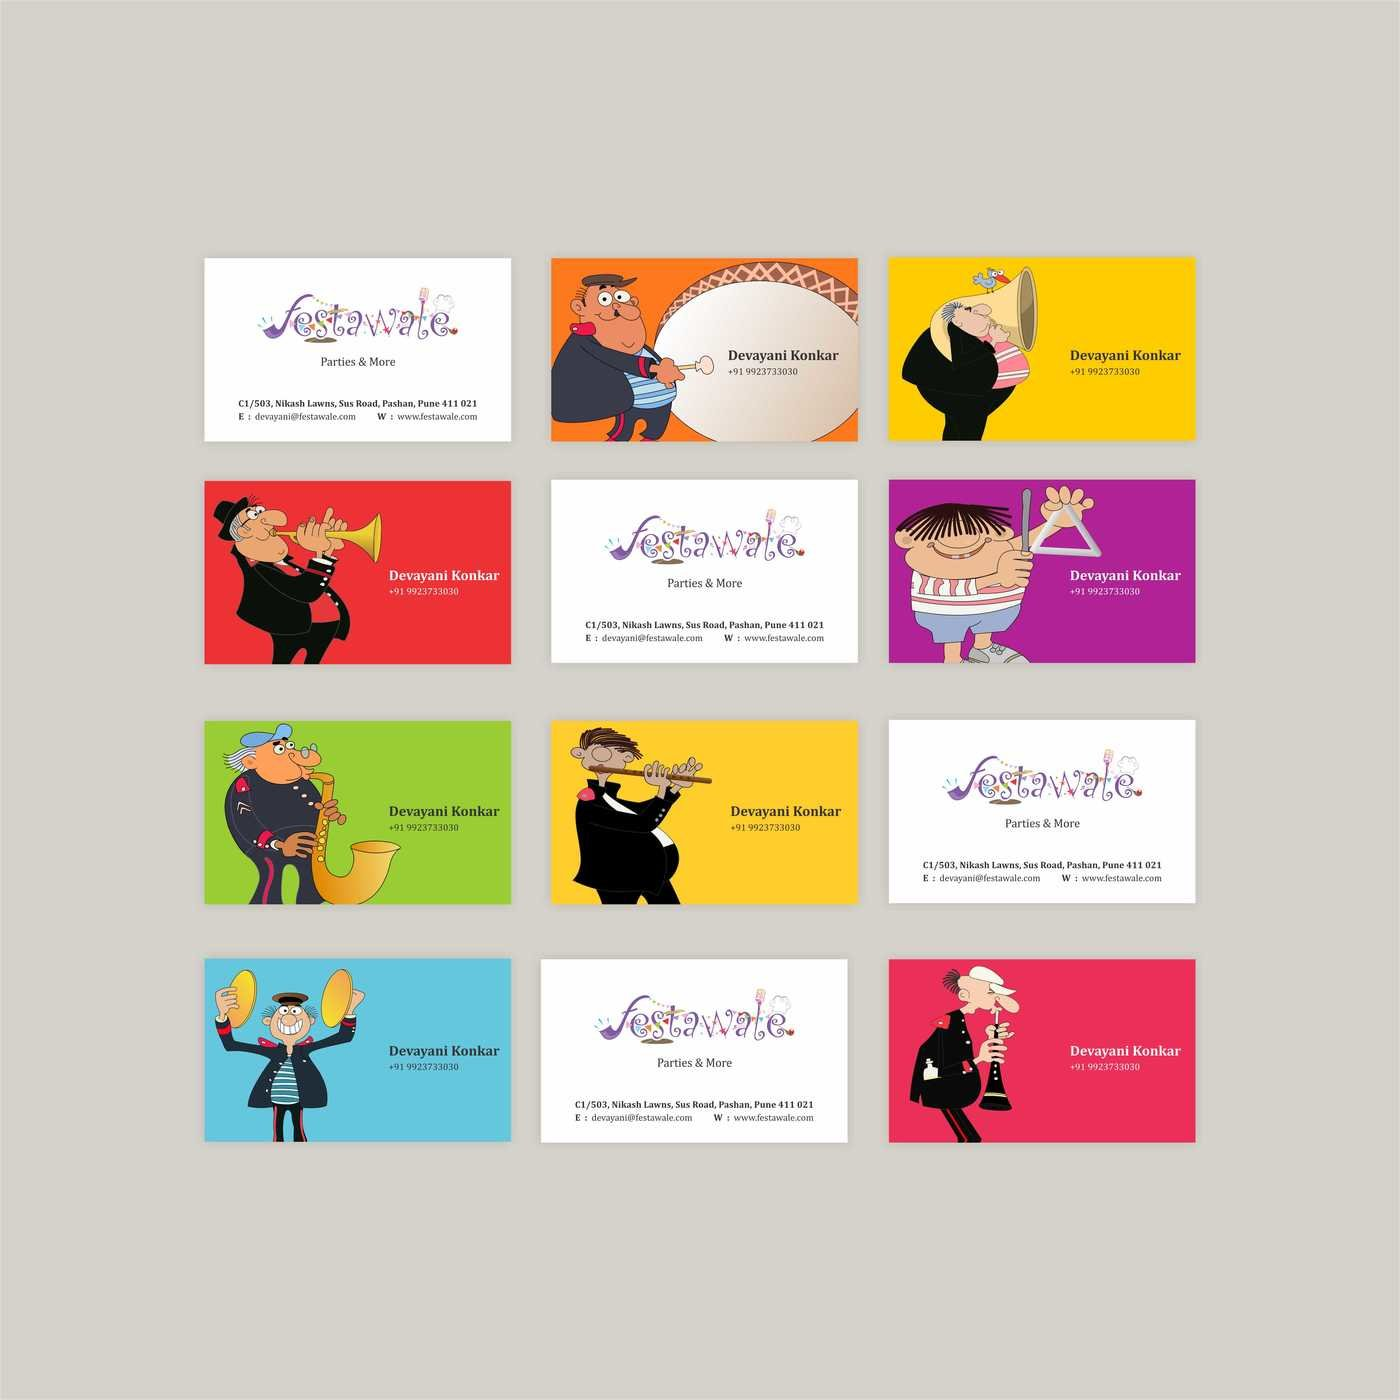 Corporate Branding Visual Identity by Prasad Chavan at Coroflot